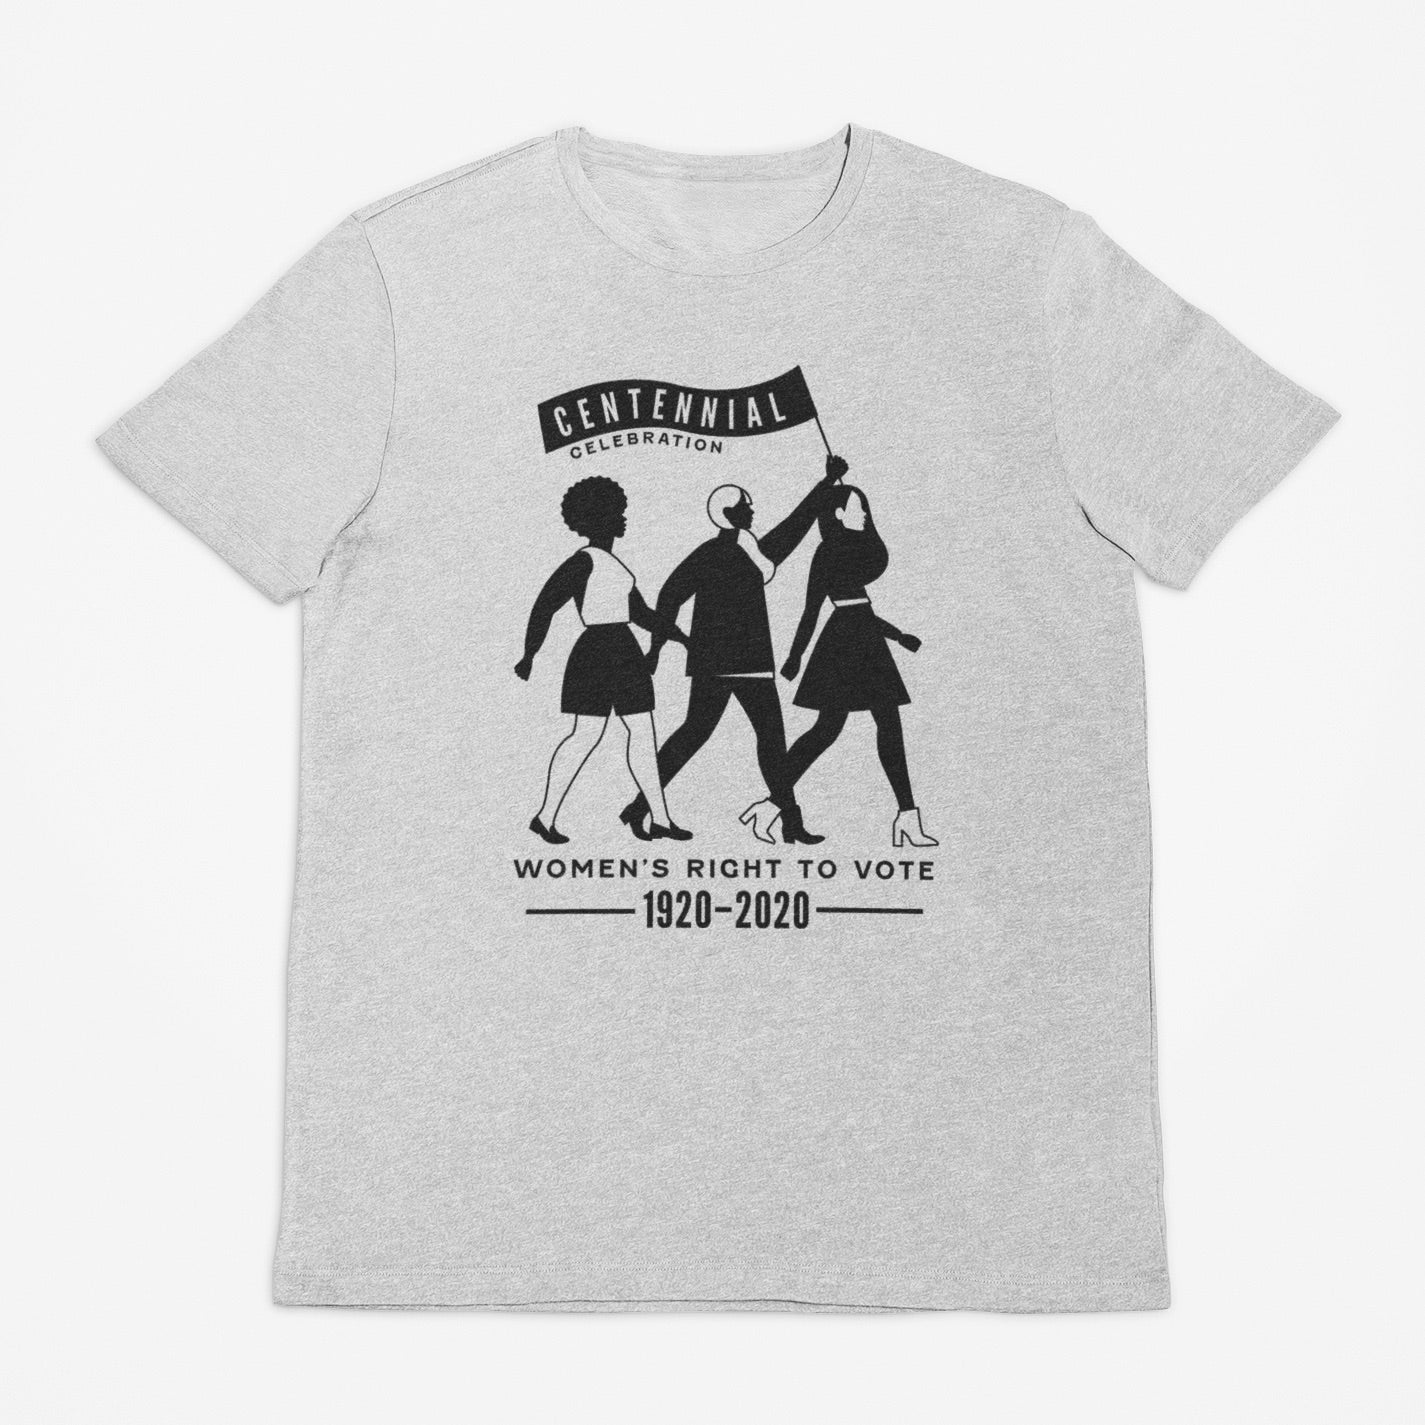 Centennial Celebration T-Shirt